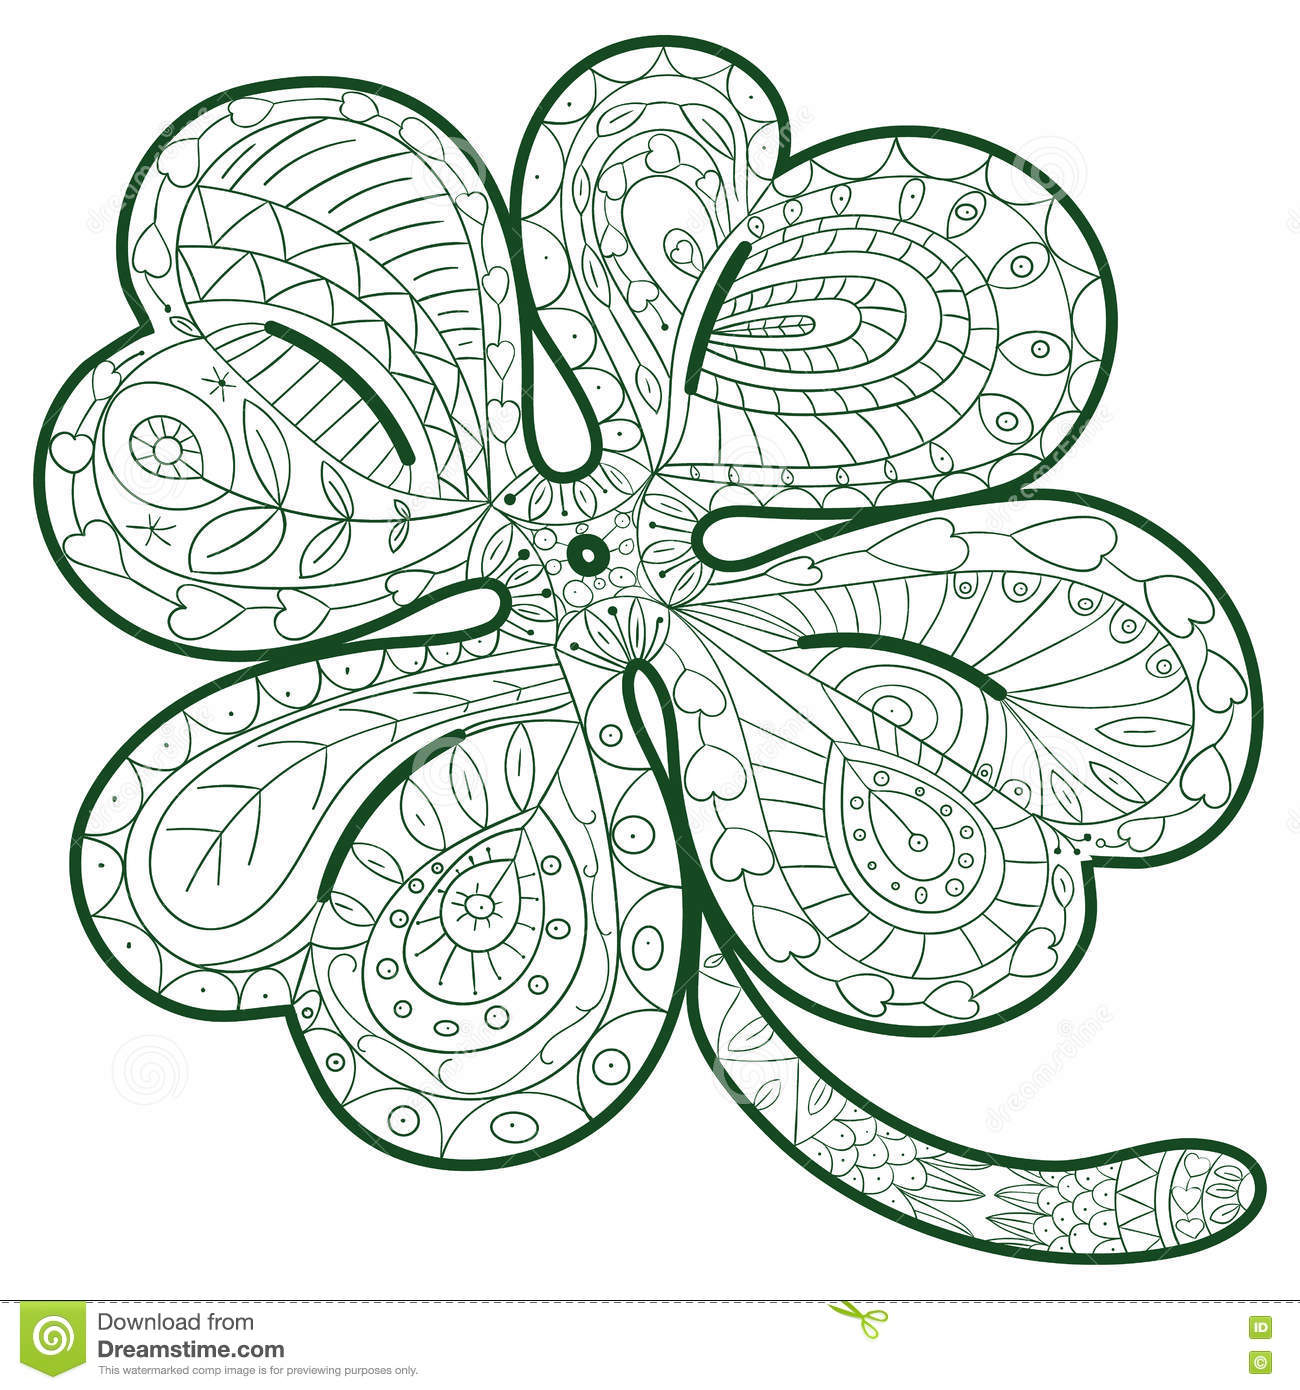 Hand Drawn Four Leaf Clover For Adult Coloring Pages In Doodle